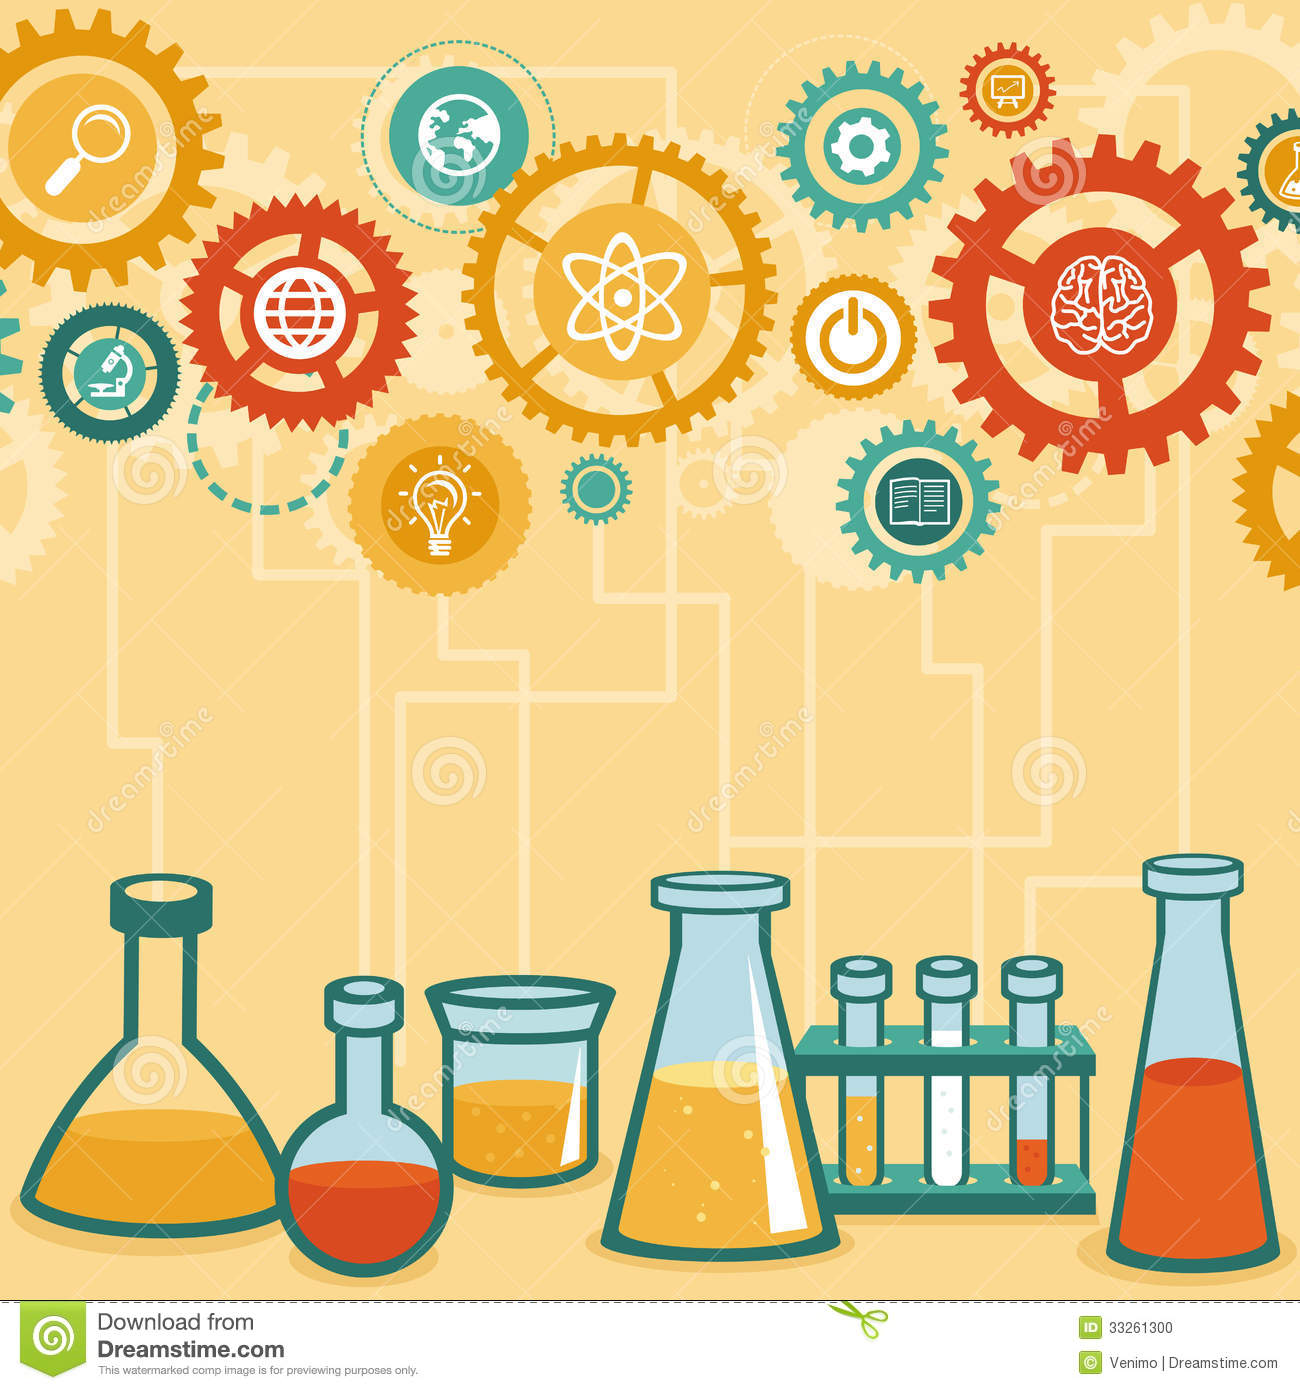 research papers chemistry planning and designing lab Science labs are a crucial part of secondary science learning most practical activities at this level require the availability of specialist resources and services.